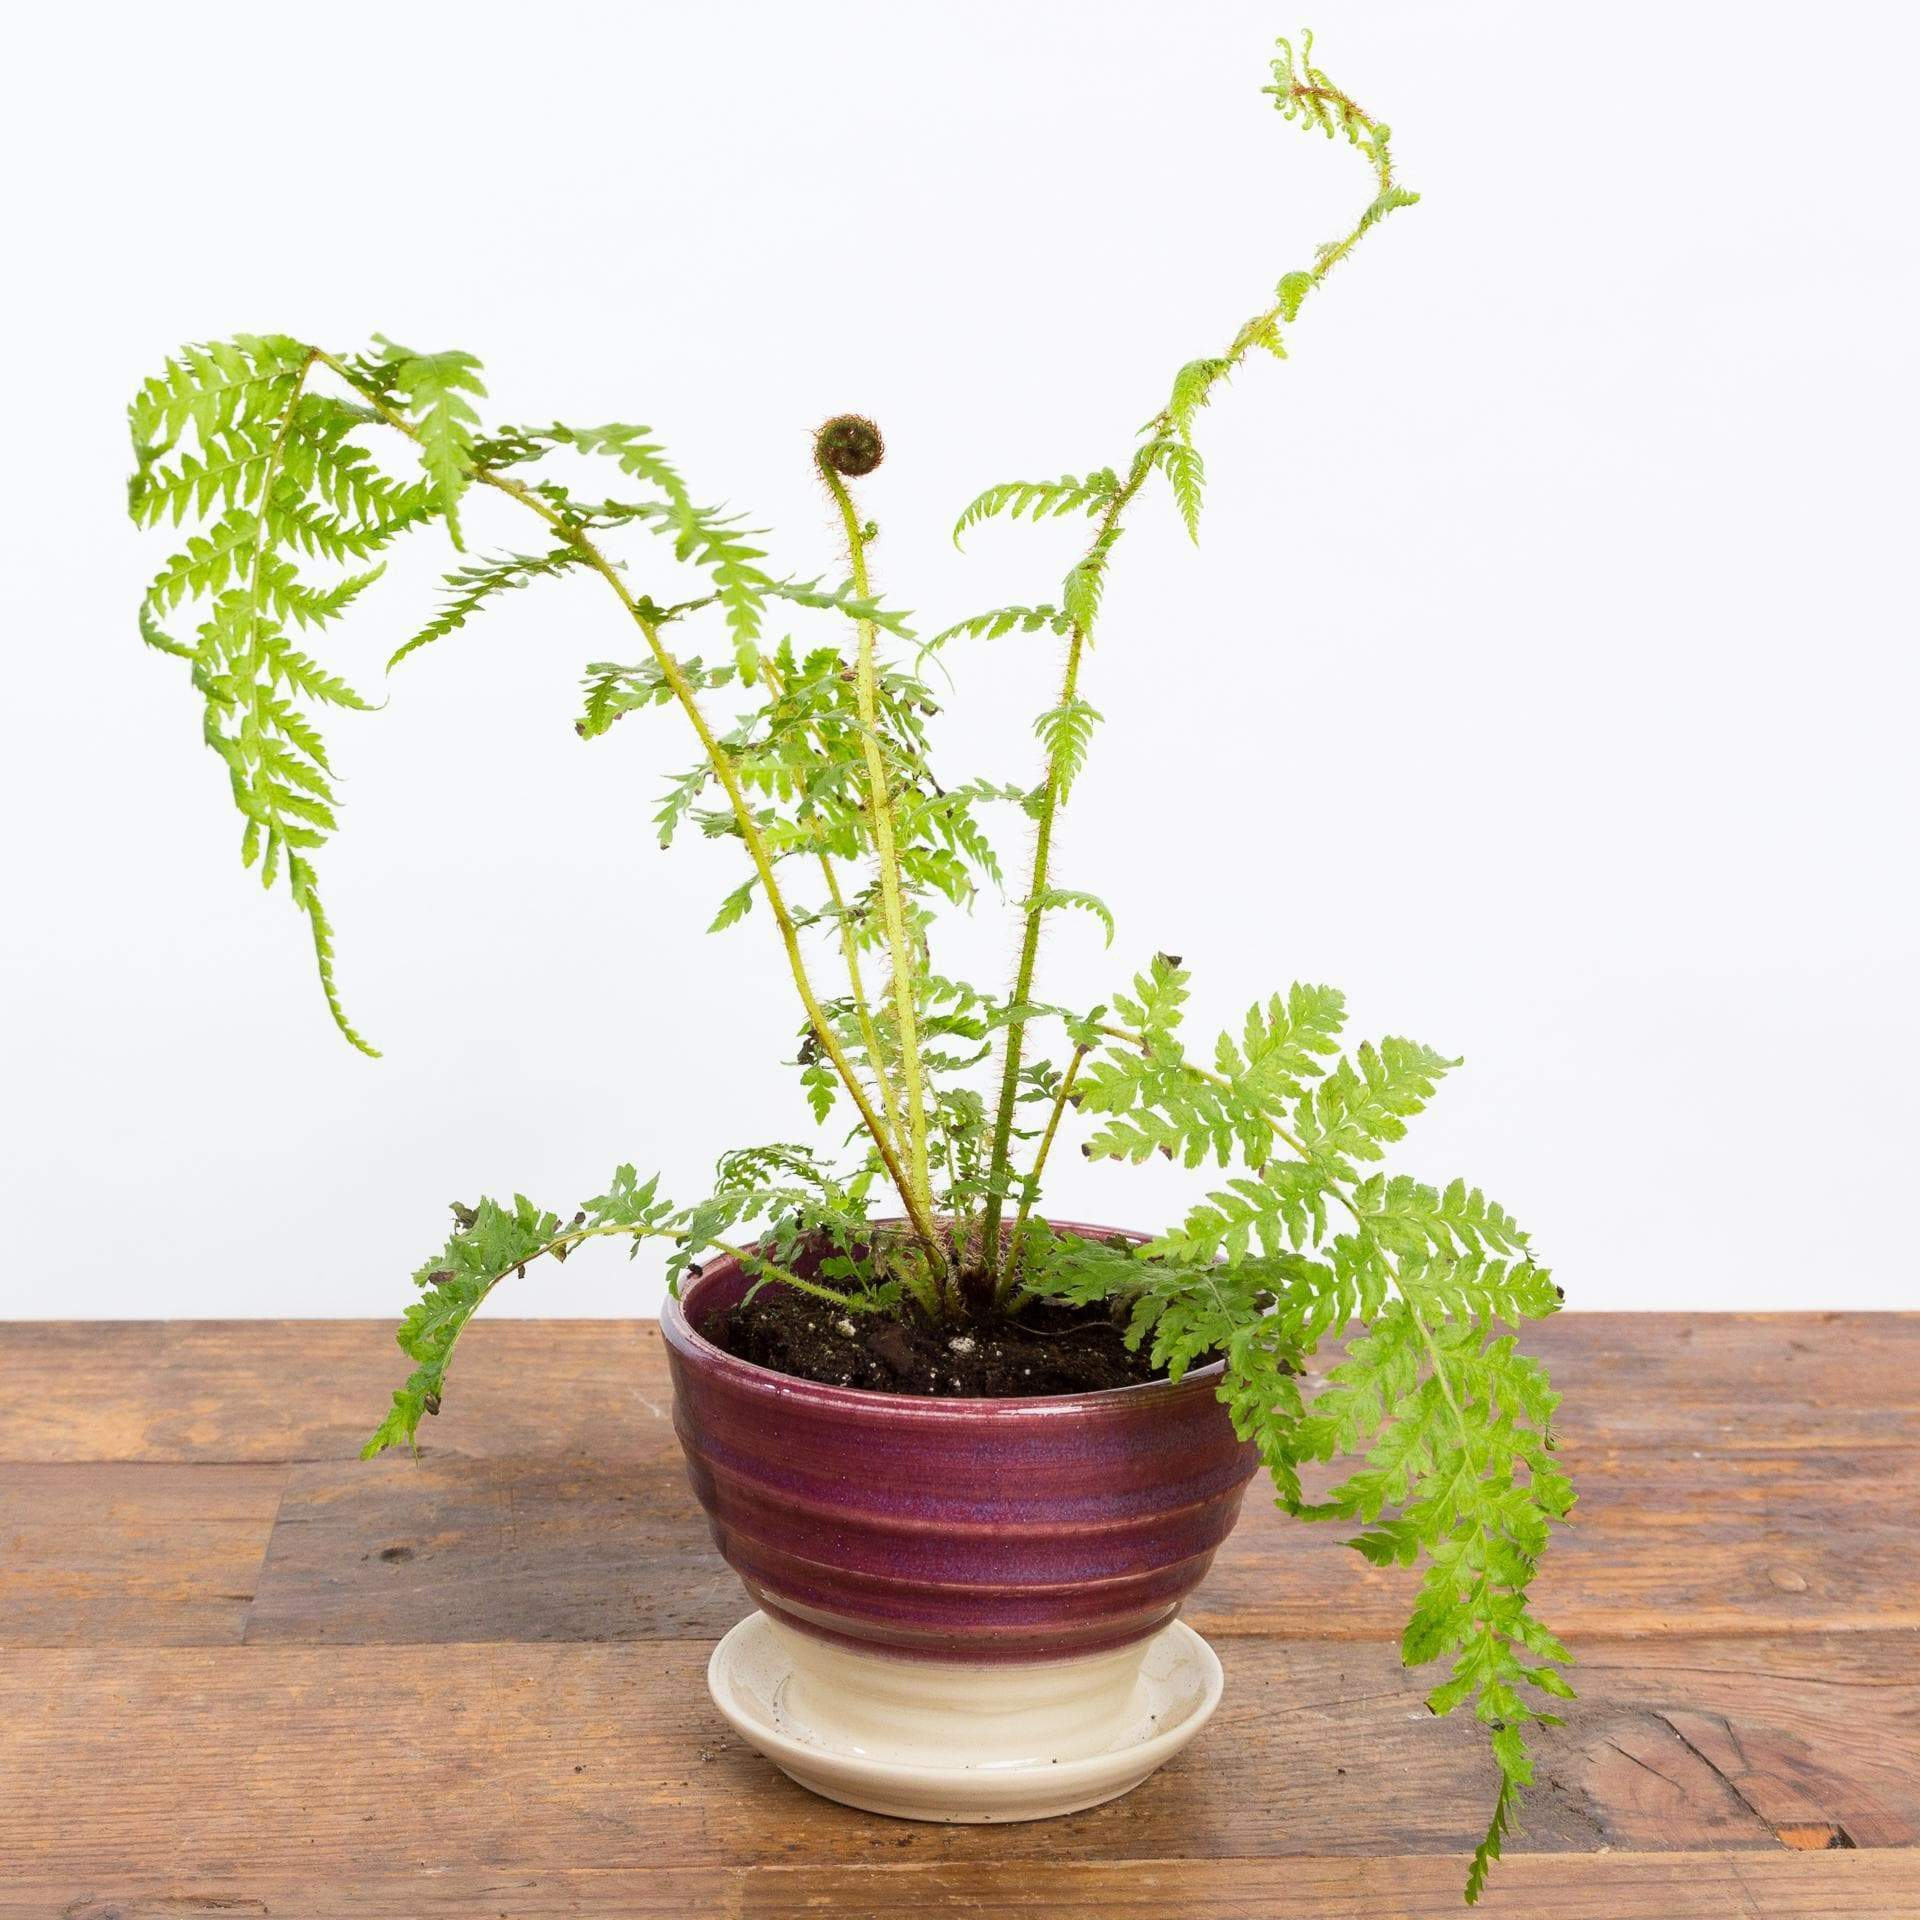 Fern 'Australian Tree' - Urban Sprouts